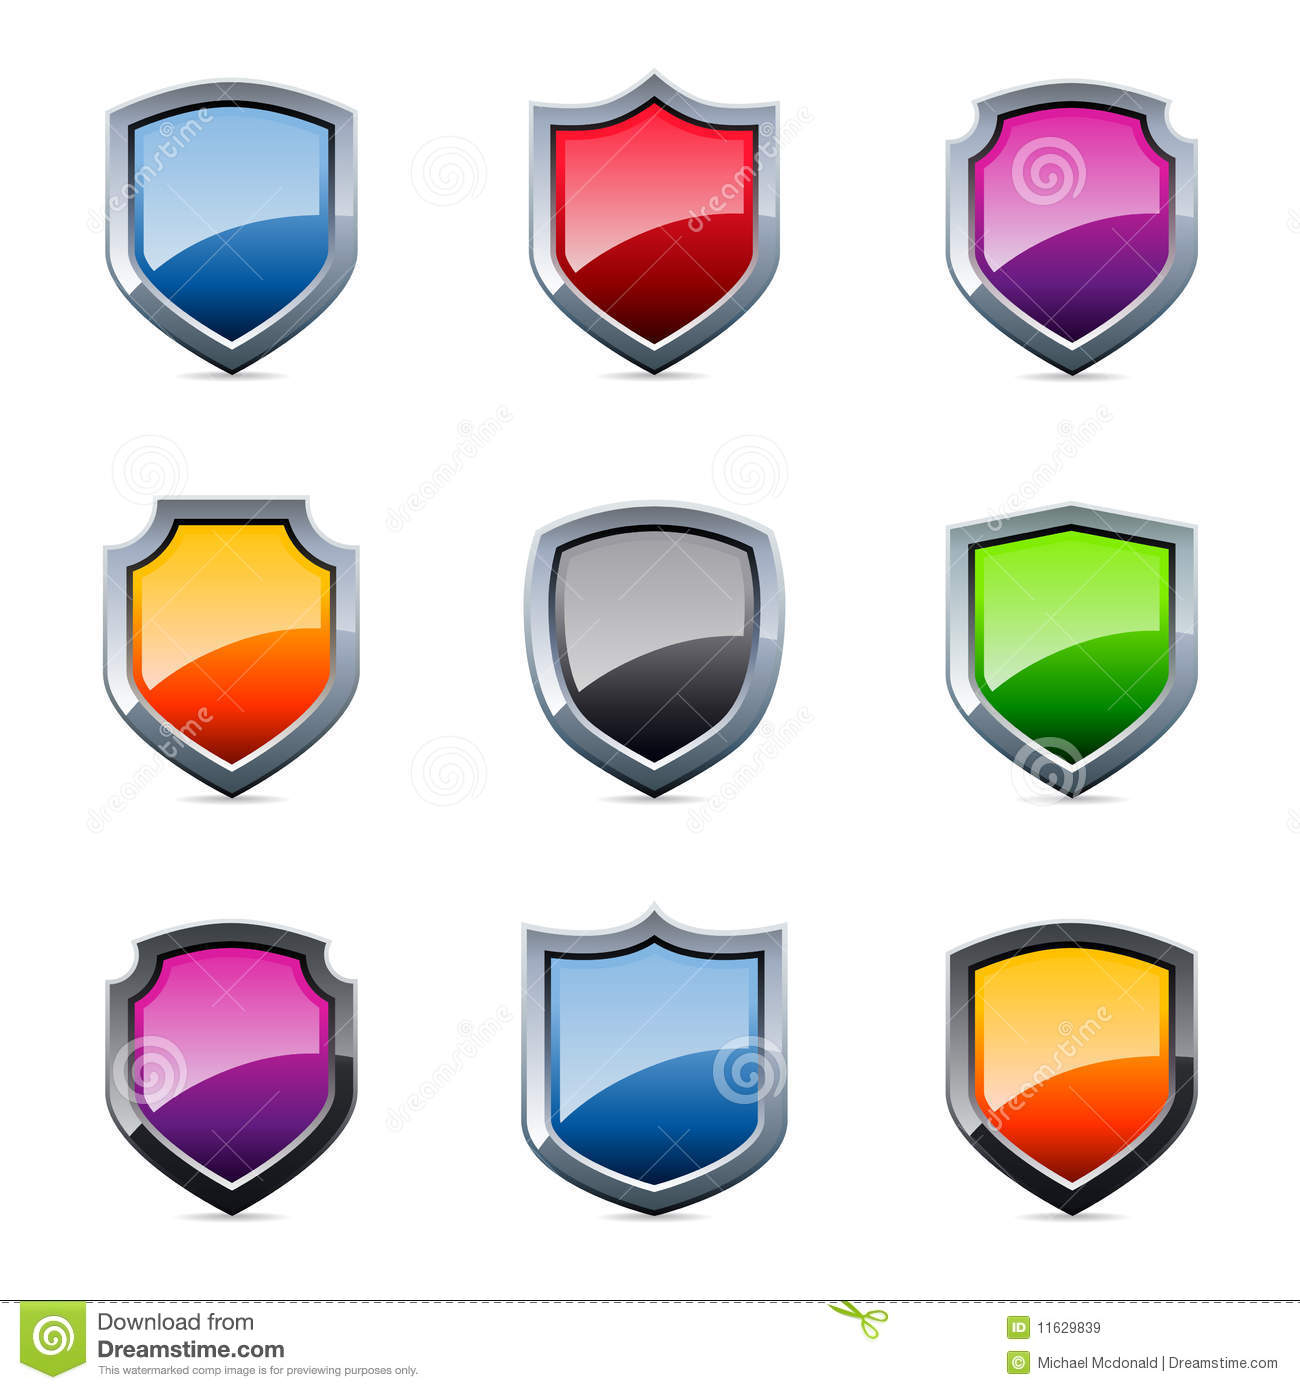 Shield design set royalty free stock photos image 5051988 - Glossy Shield Icons Royalty Free Stock Images